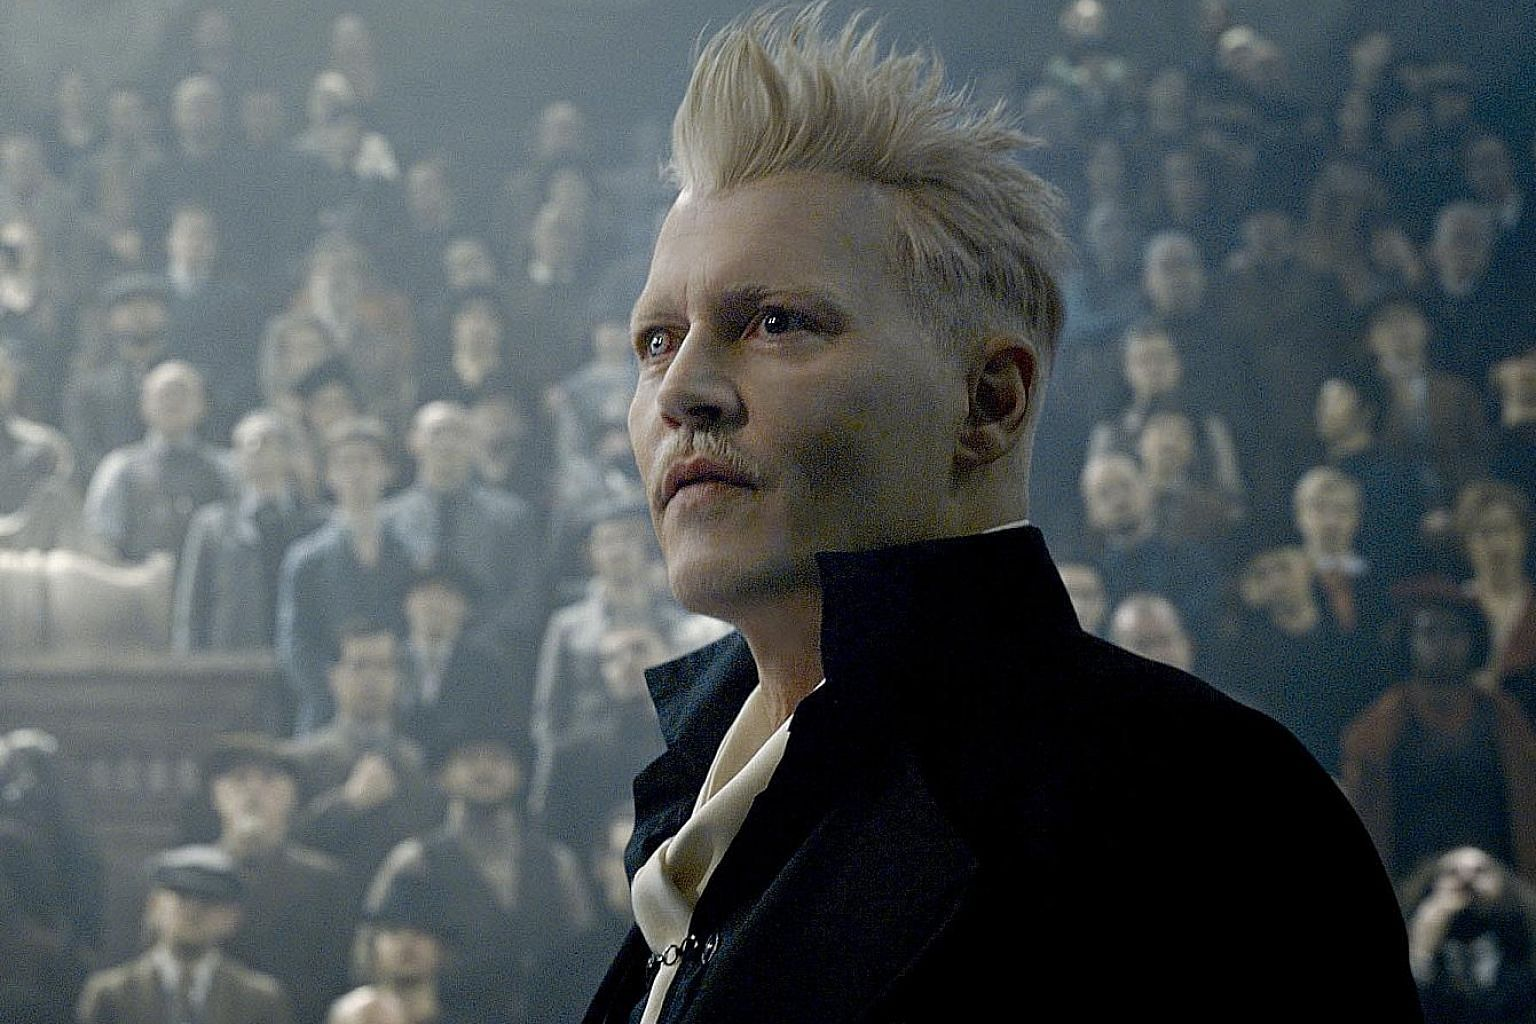 Johnny Depp is Grindelwald, an evil wizard, in Fantastic Beasts: The Crimes Of Grindelwald.